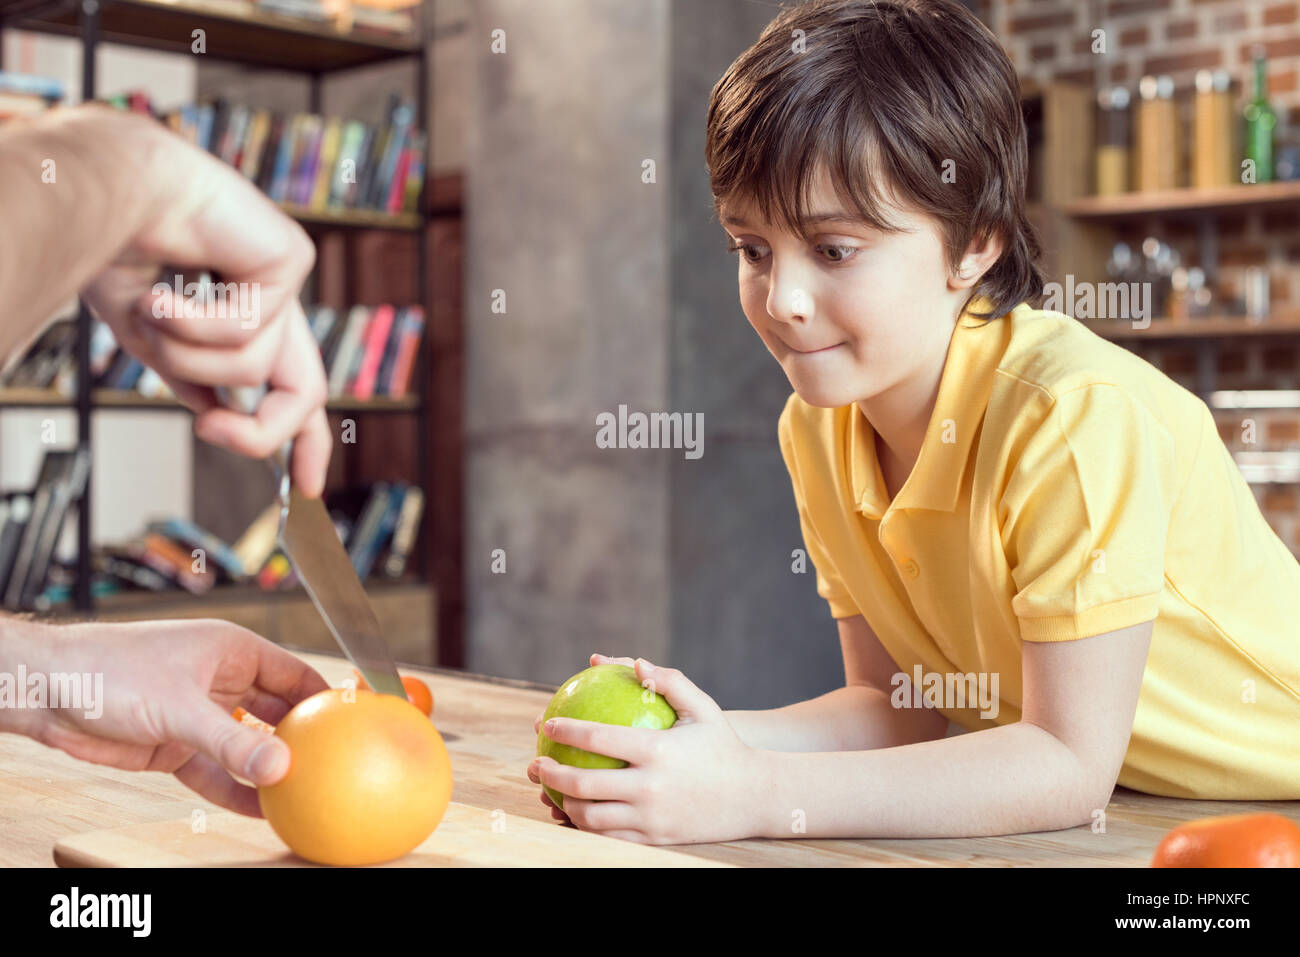 cute smiling son looking at father cutting grapefruit with knife - Stock Image